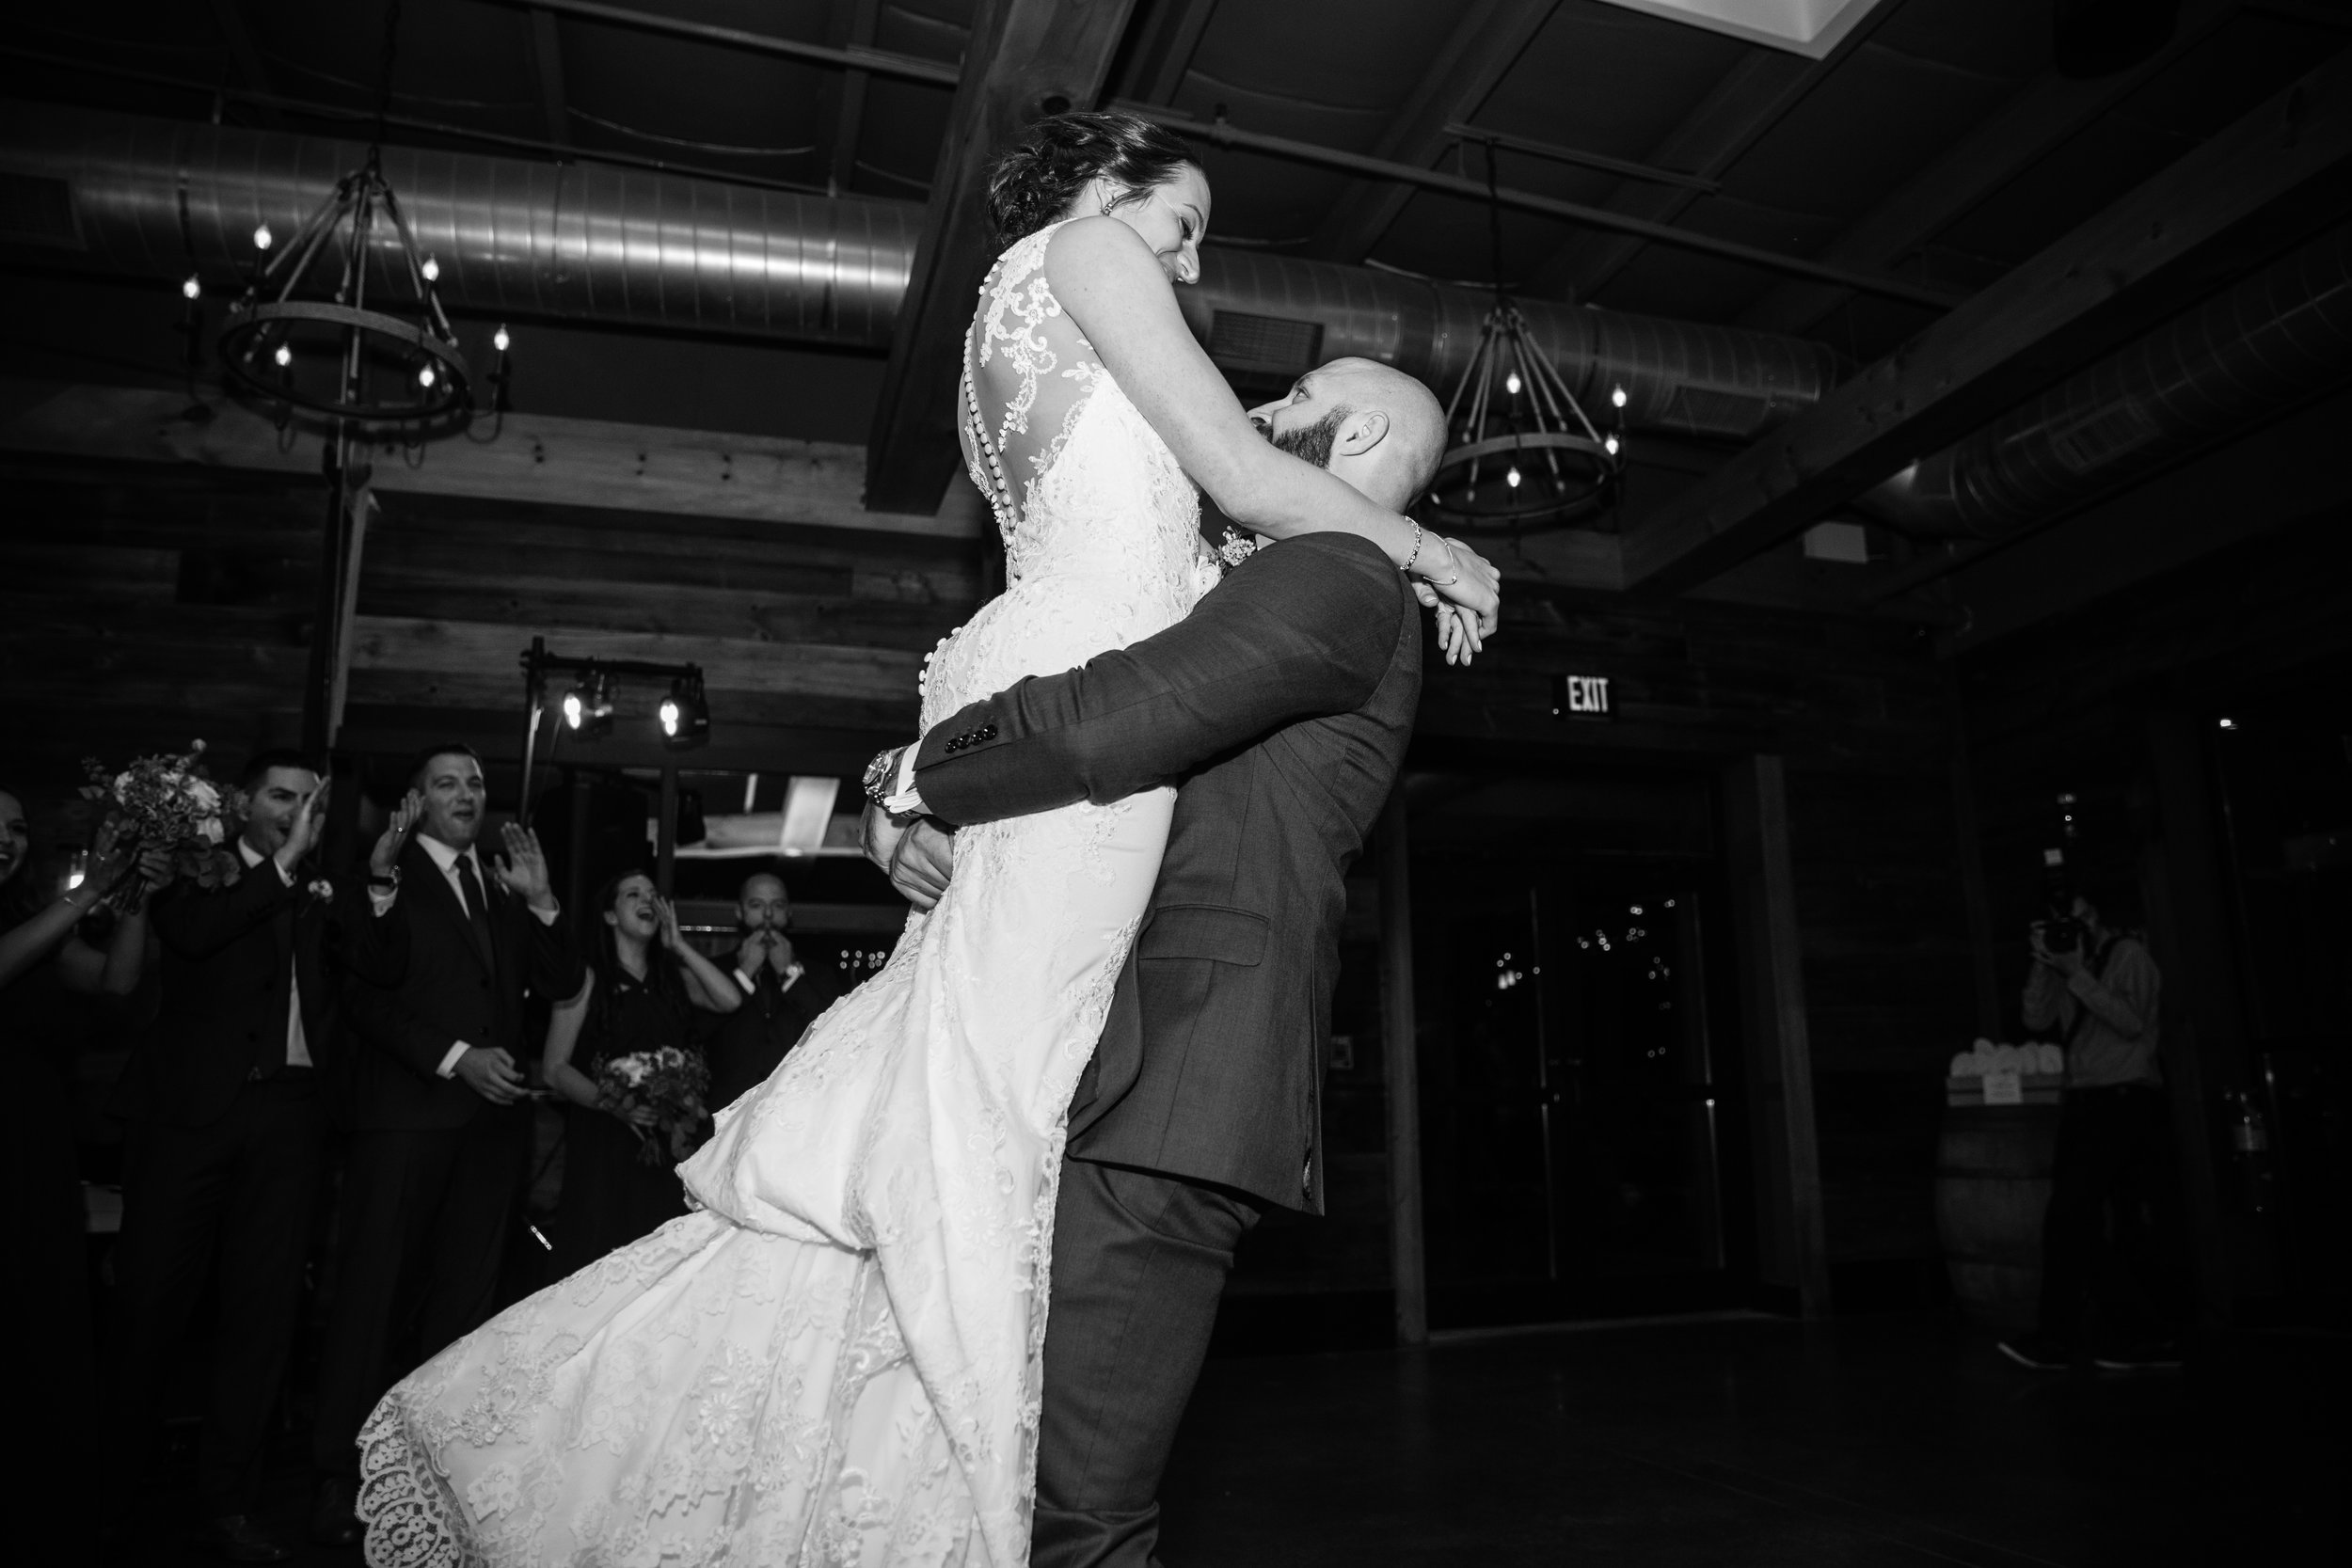 We LOVED working with Kendall - at db Studios for our wedding. We learned the foxtrot for our first dance that finished with a lift and dip (true crowd pleaser). My now husband and I had such a good time taking lessons together we definitely will continue in the future. For first dance, date night, whatever - just take lessons with Kendall, you won't regret it.